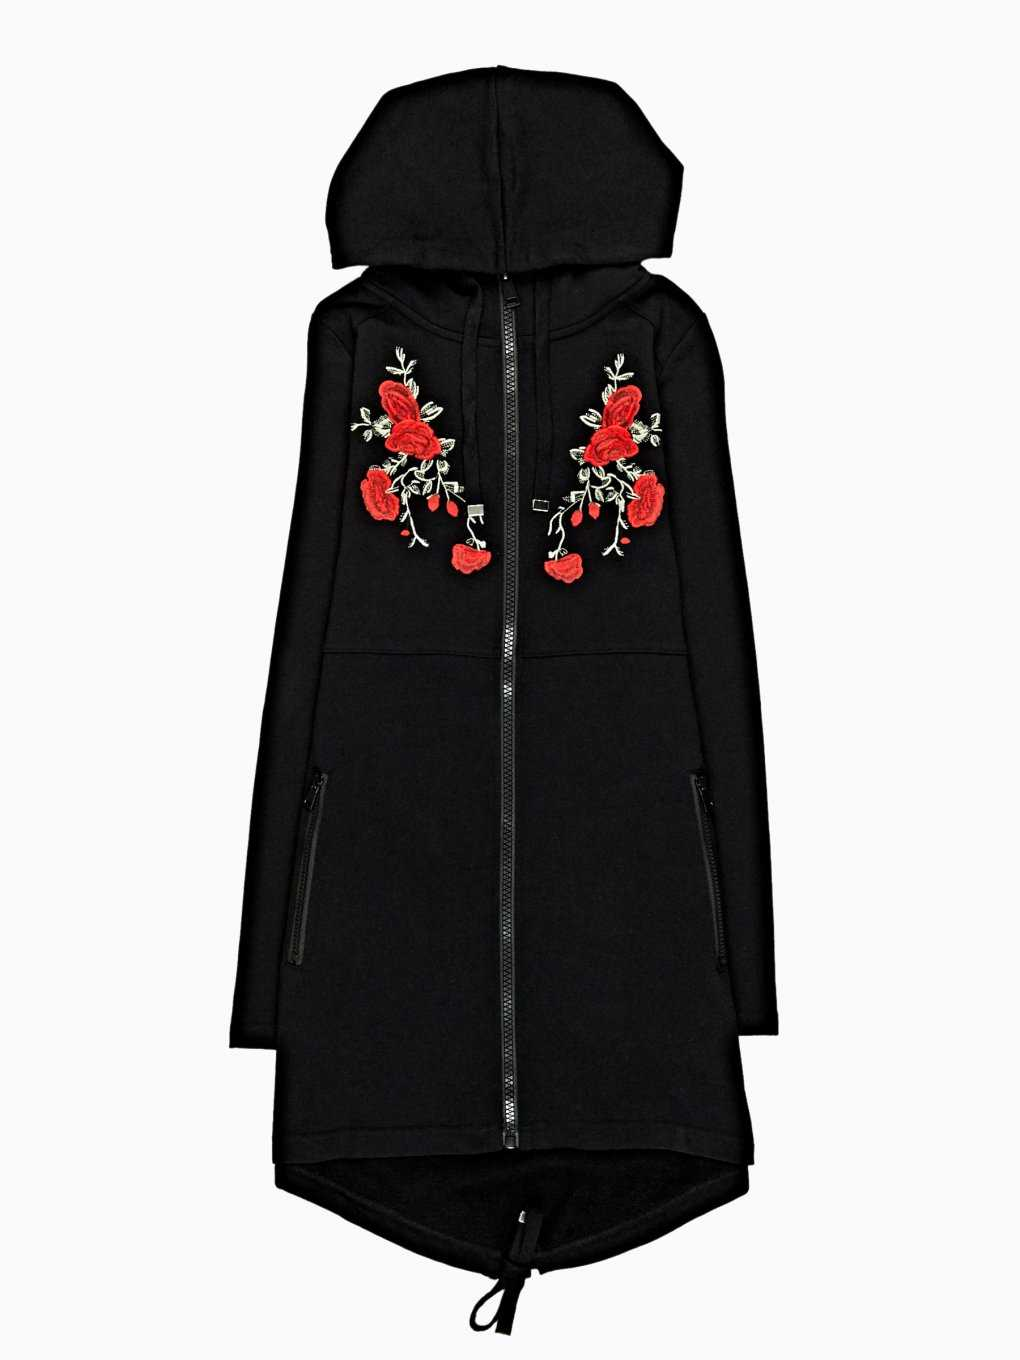 LONGLINE HOODIE WITH FLORAL EMBROIDERY